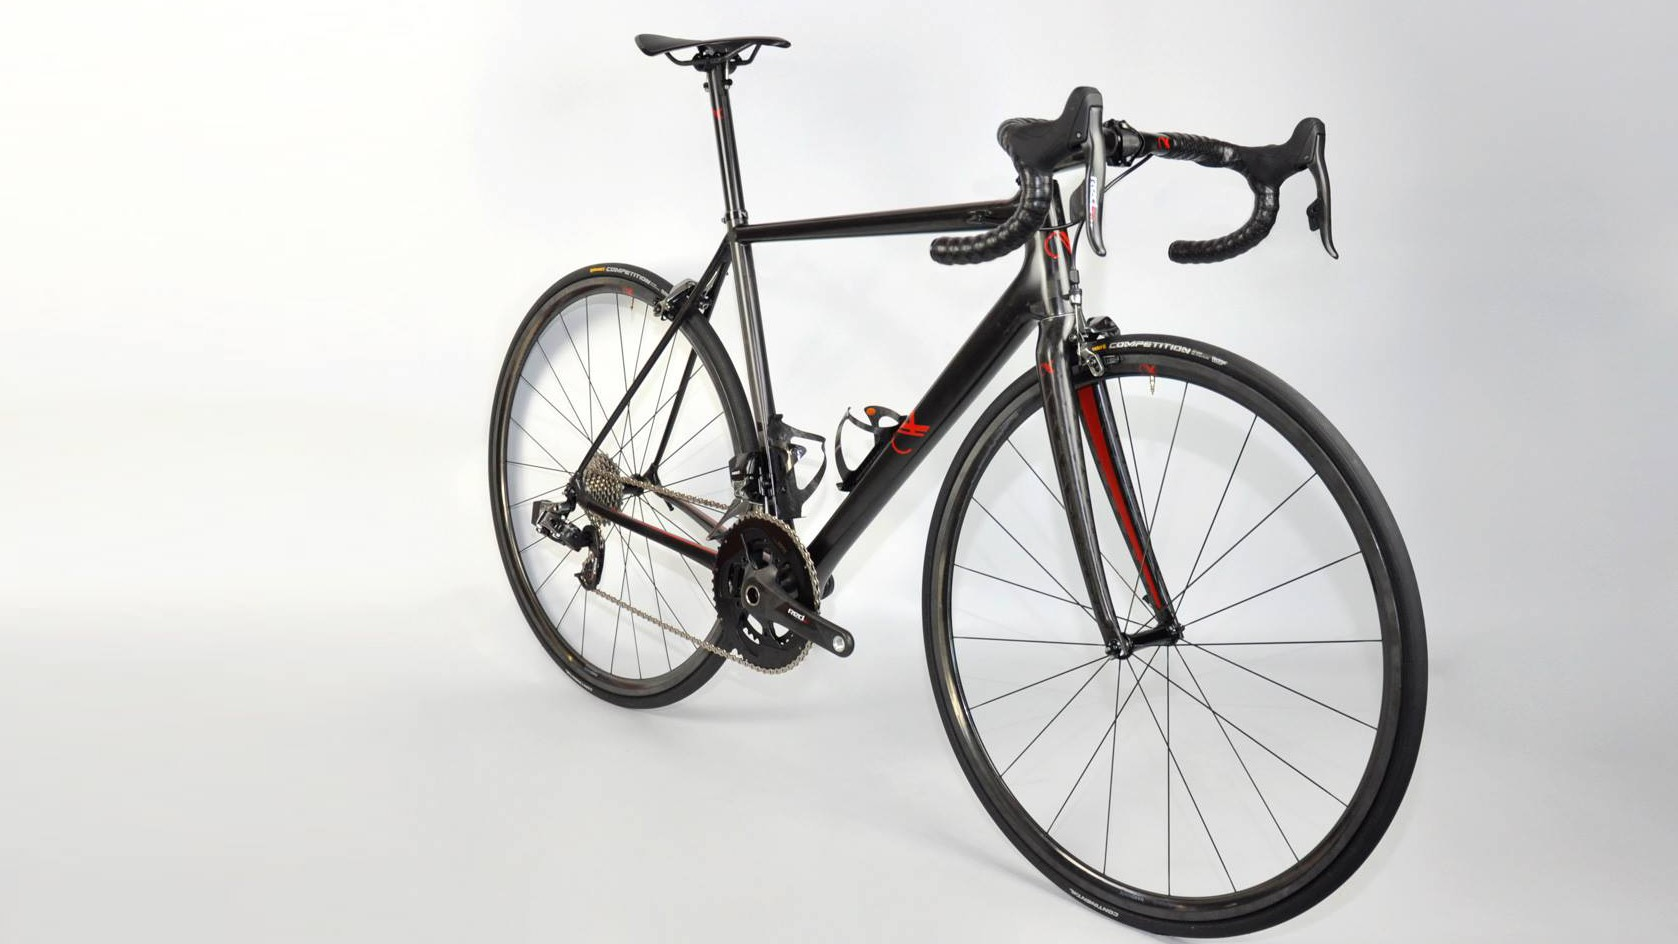 The AX-Lightness VIAL evo Ultra eTap sits a full 2kg under the UCI's current weight limit